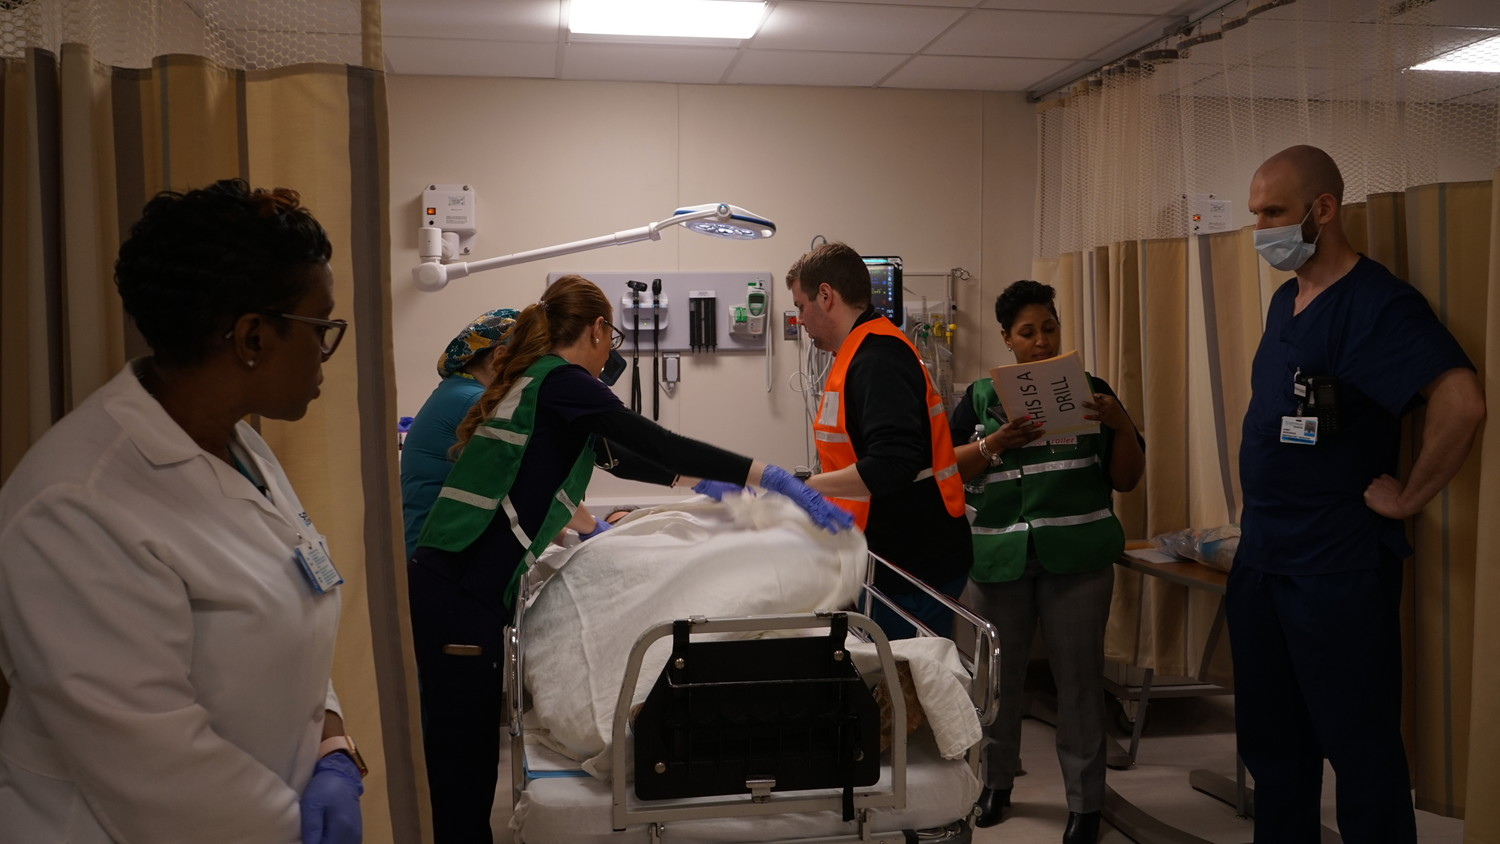 Nurses and doctors attempted to warm a patient whose body temperature was dropping due to blood loss.